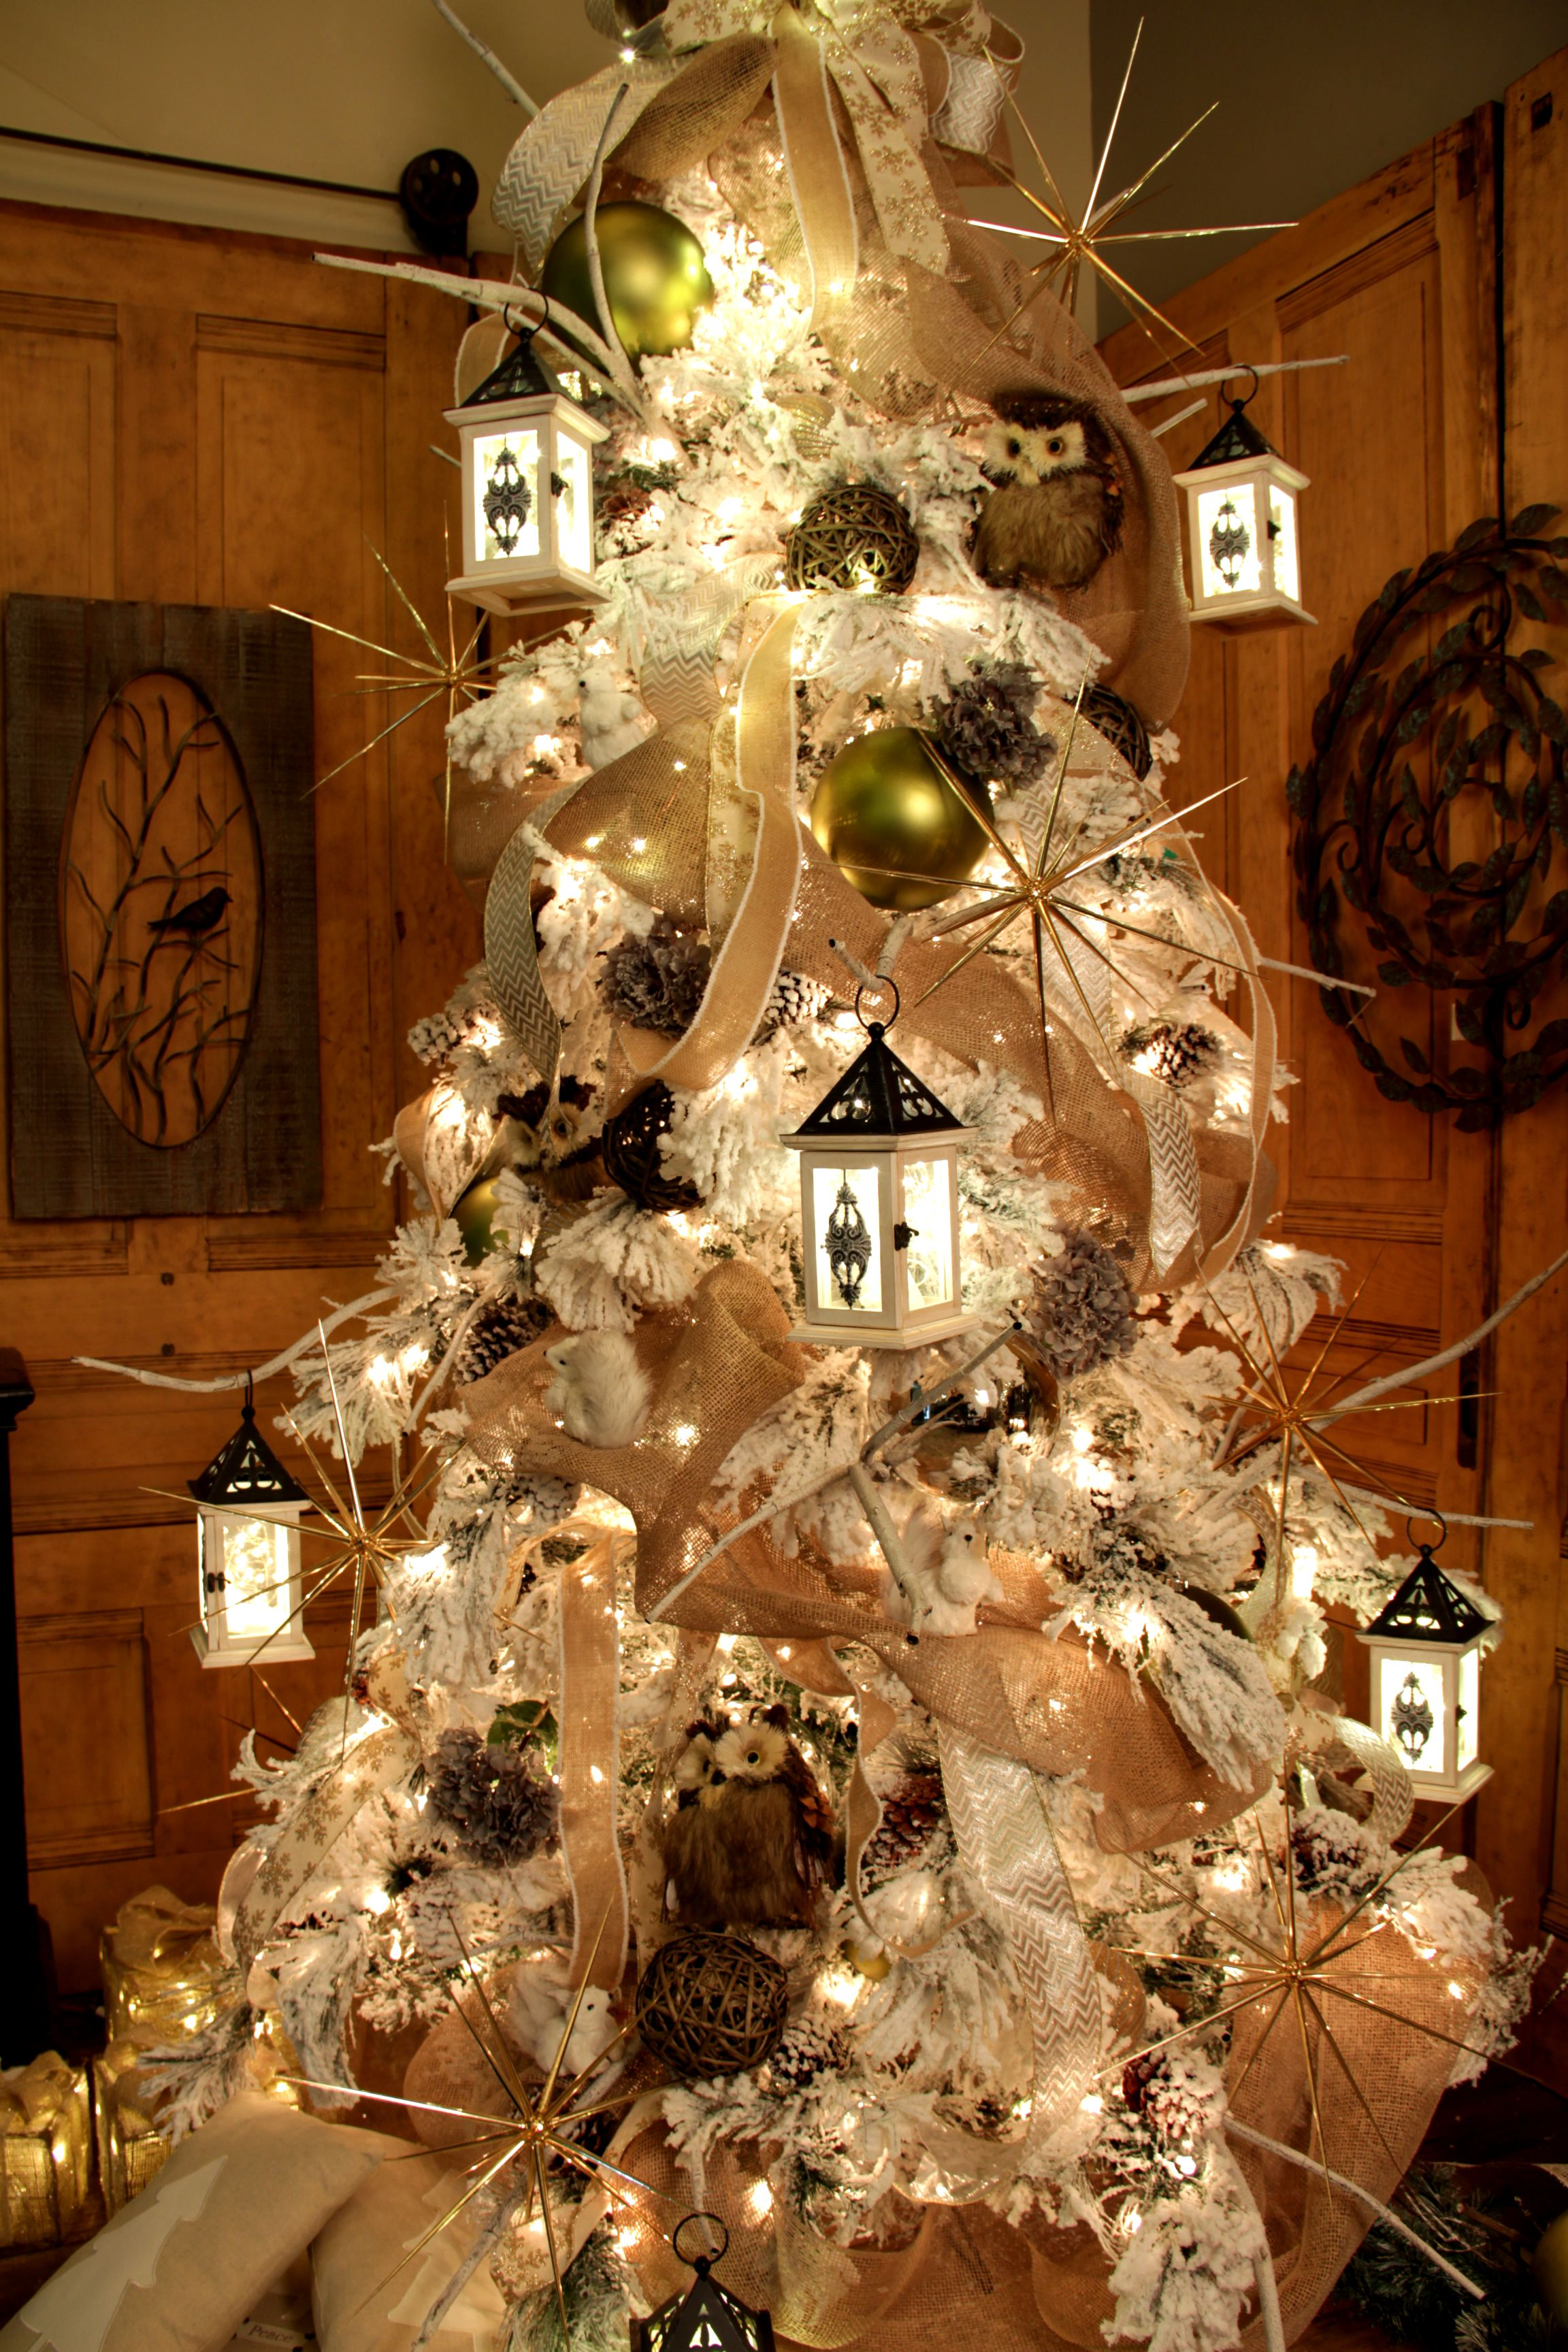 Pin by Connie McDonald on trees n trends | Christmas ...